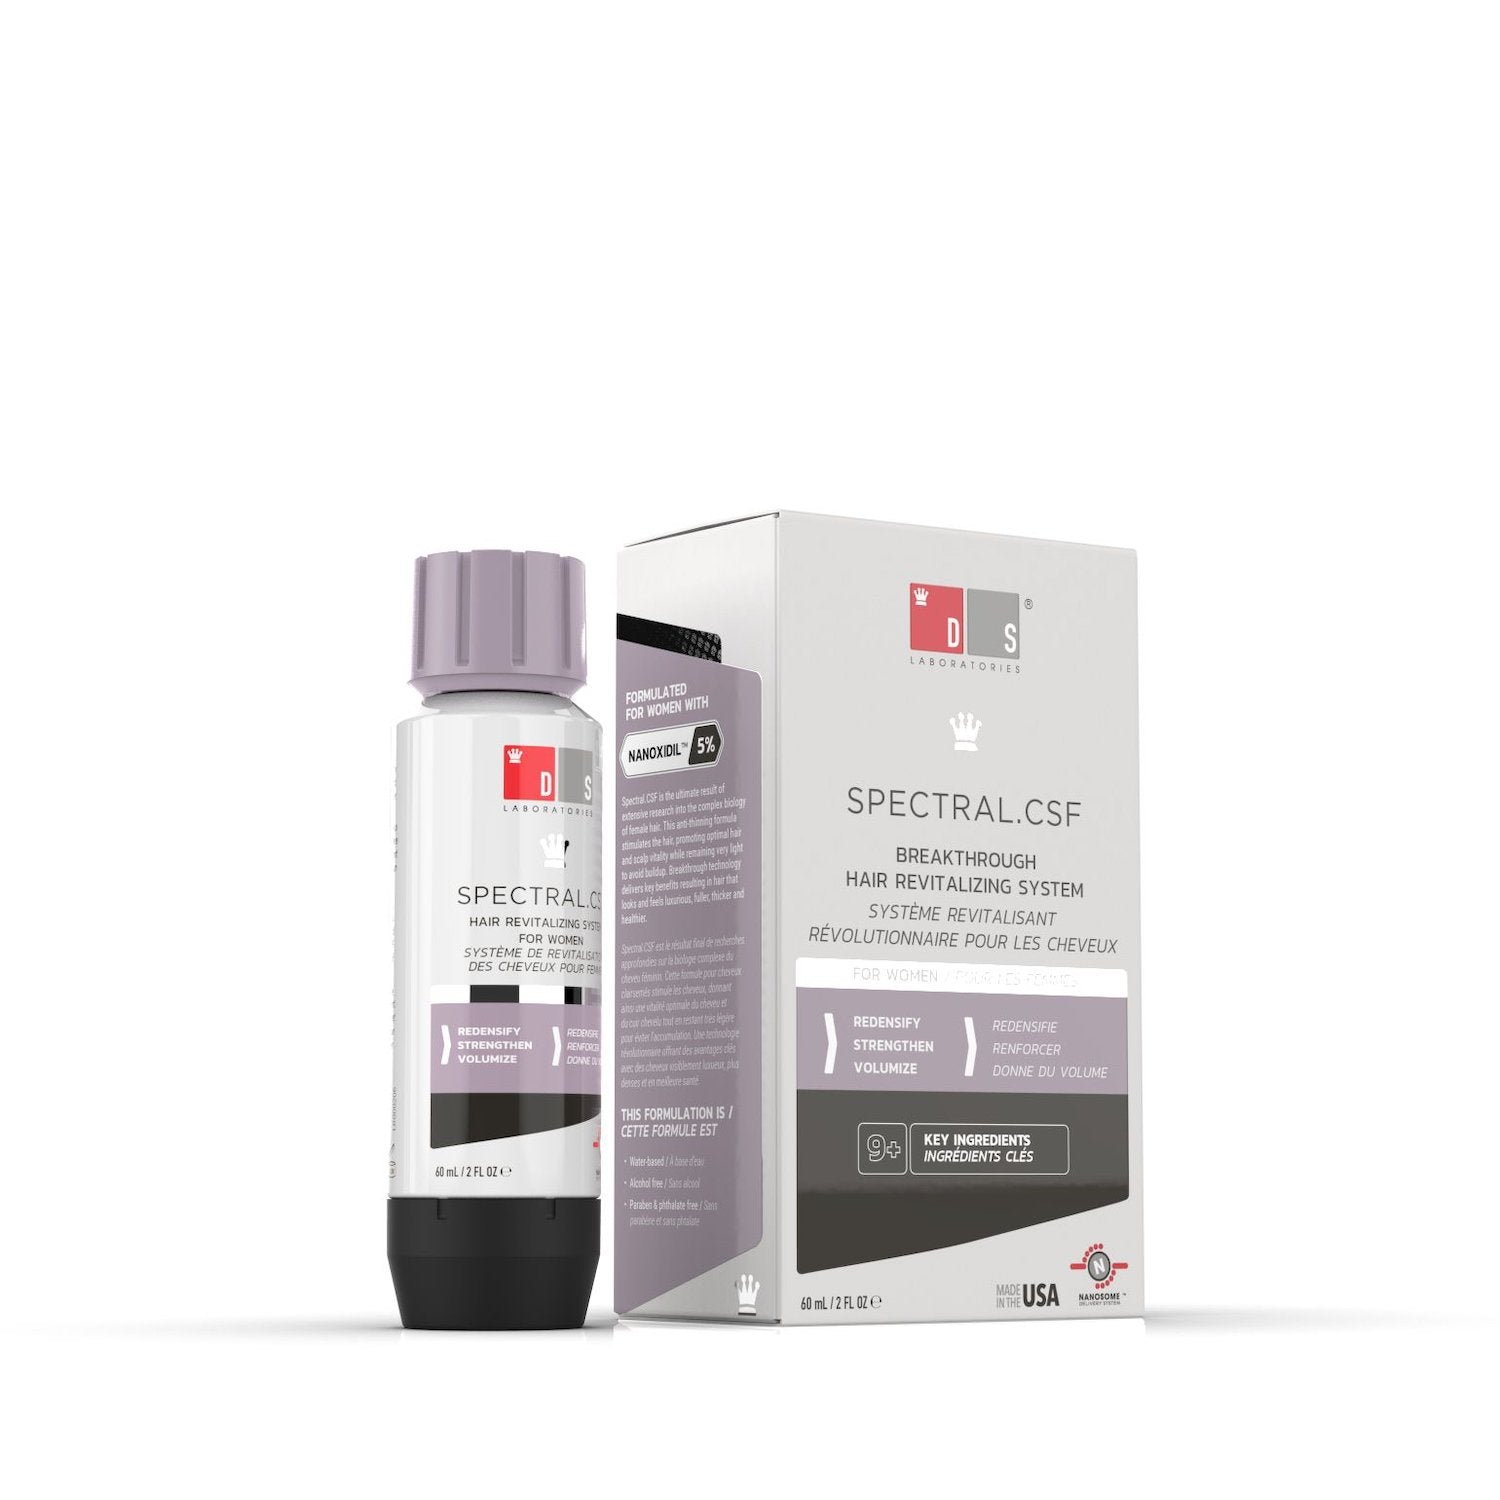 Spectral.CSF | Breakthrough Hair Revitilizing System for Women with Nanoxidil 5%